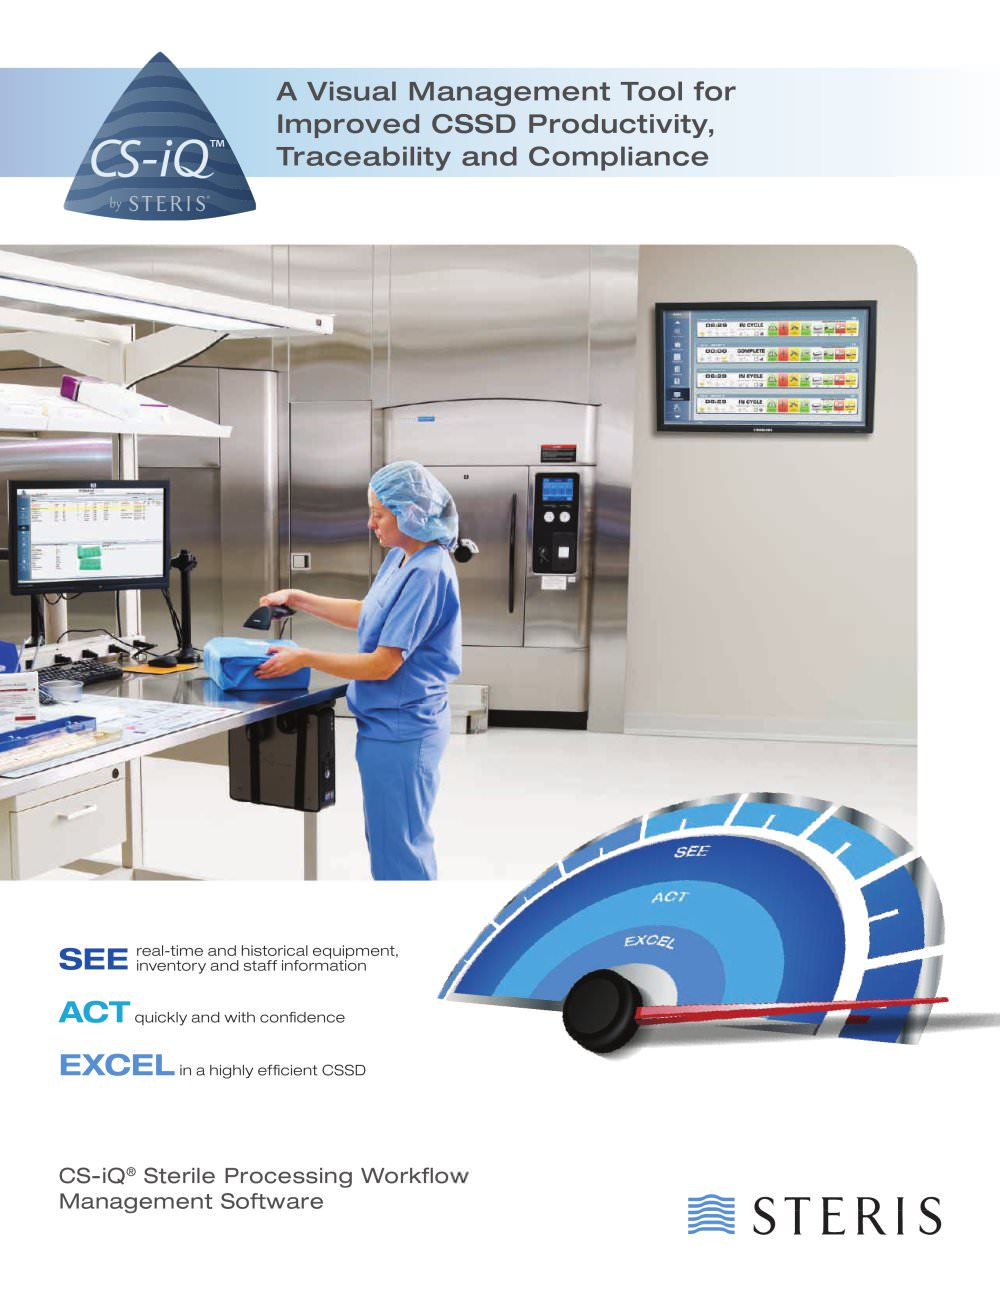 CS-IQ STERILE PROCESSING WORKFLOW MANAGEMENT SOFTWARE - 3 MODULES - 1 / 4  Pages